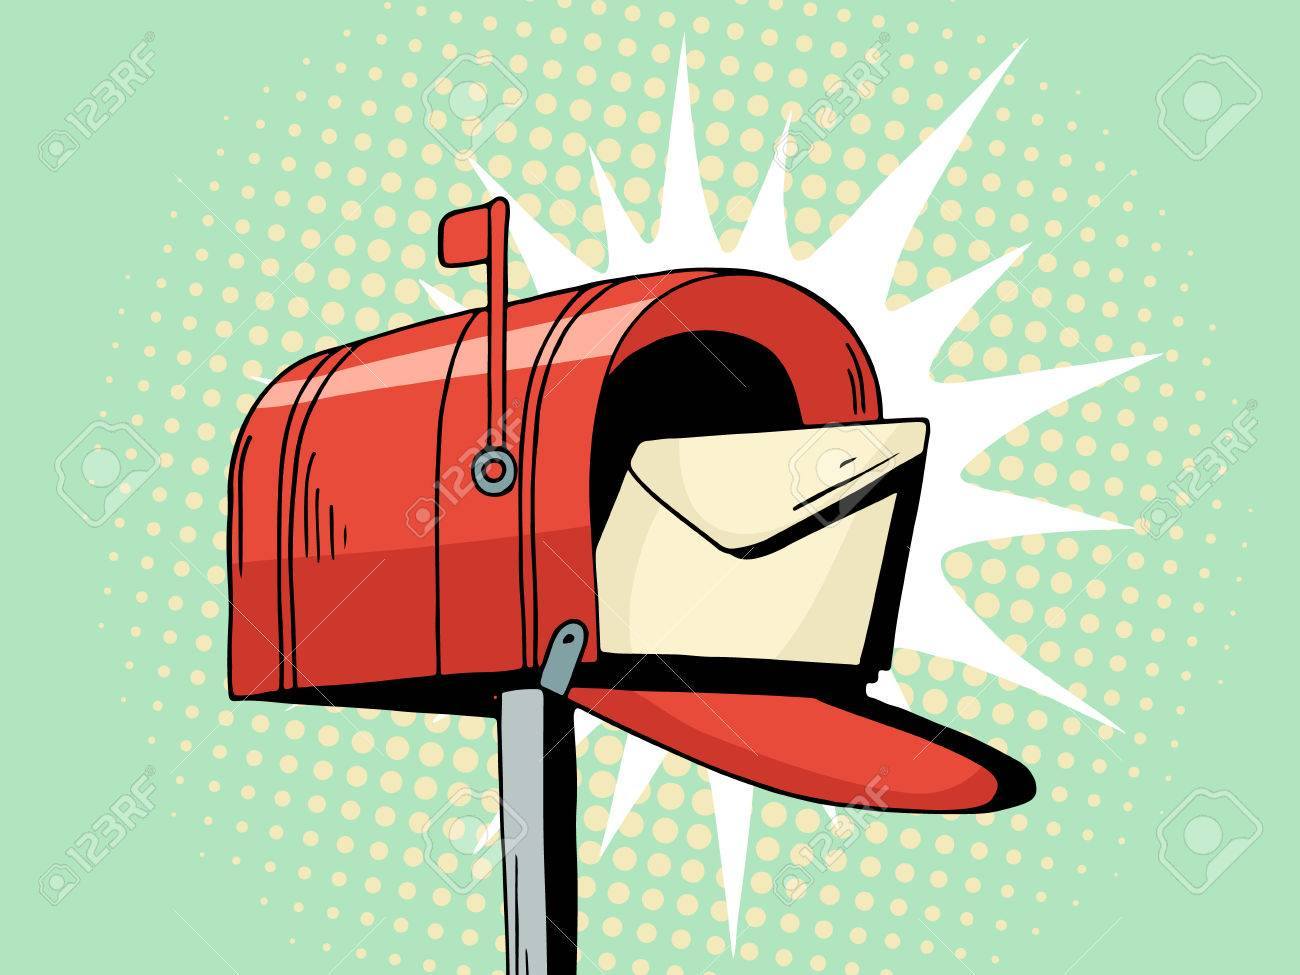 Cartoon Pop Art Red Mailbox Send Letter Comic Hand Drawn